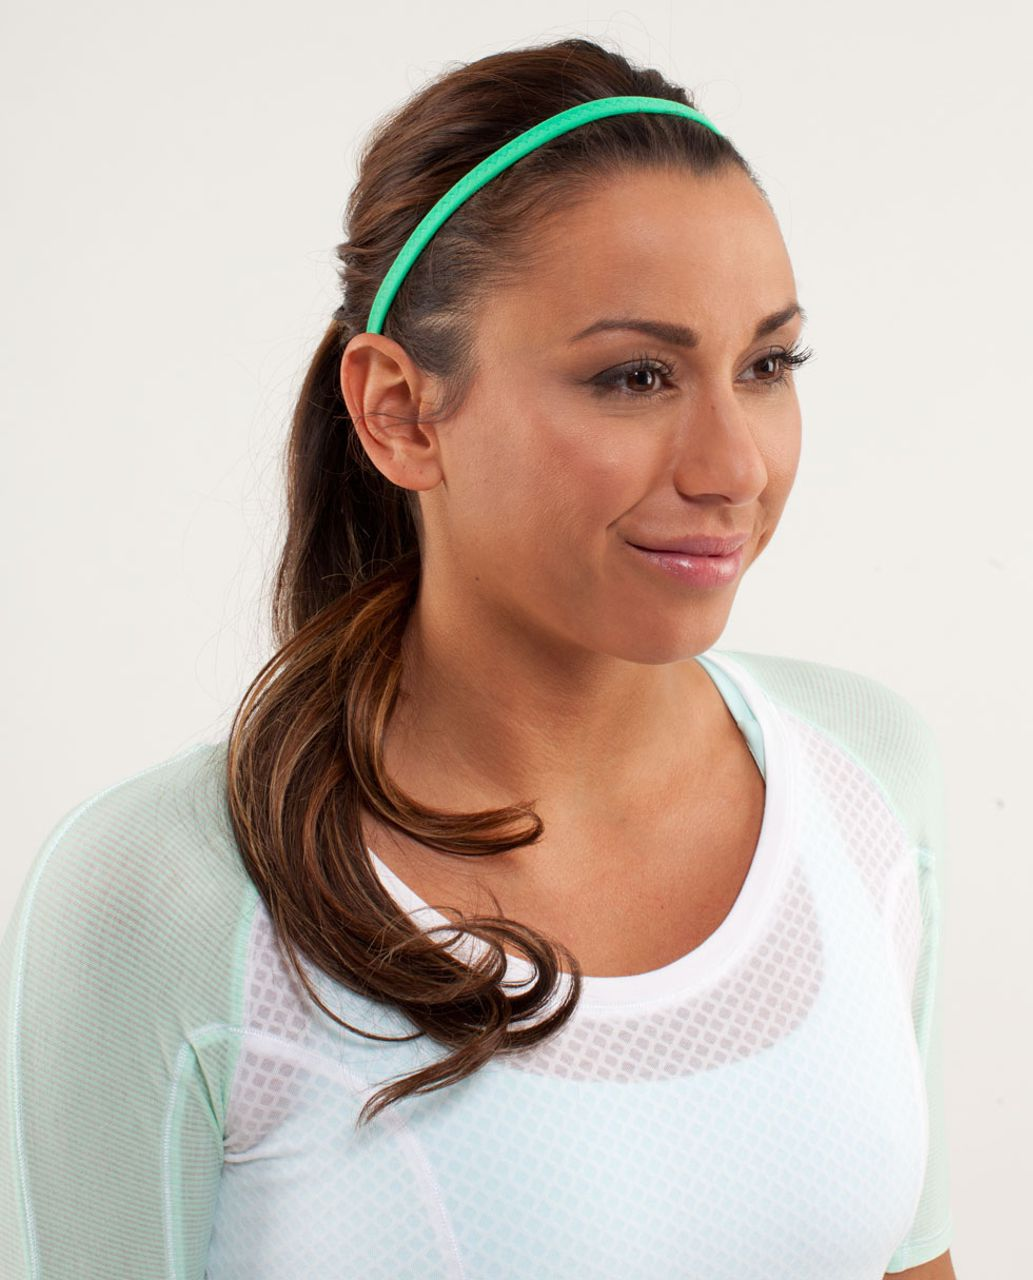 Lululemon Strappy Headband - Very Green